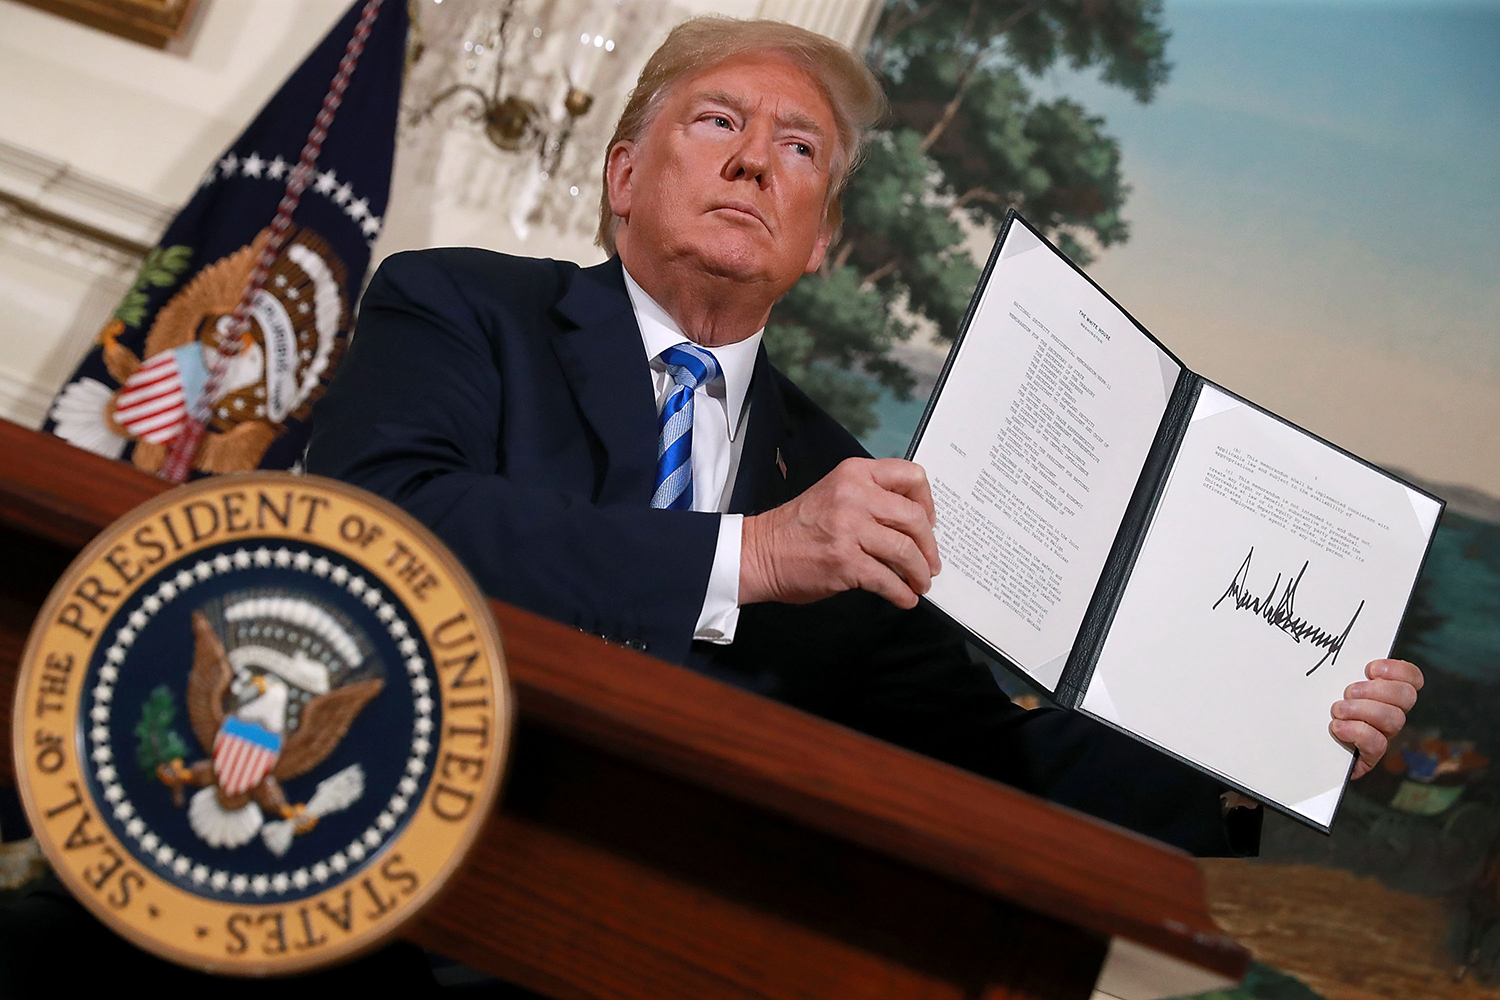 U.S. President Donald Trump holds up a memorandum at the White House in Washington that reinstates sanctions on Iran after he announced his decision to withdraw the United States from the 2015 Iran nuclear deal on May 8, 2018.